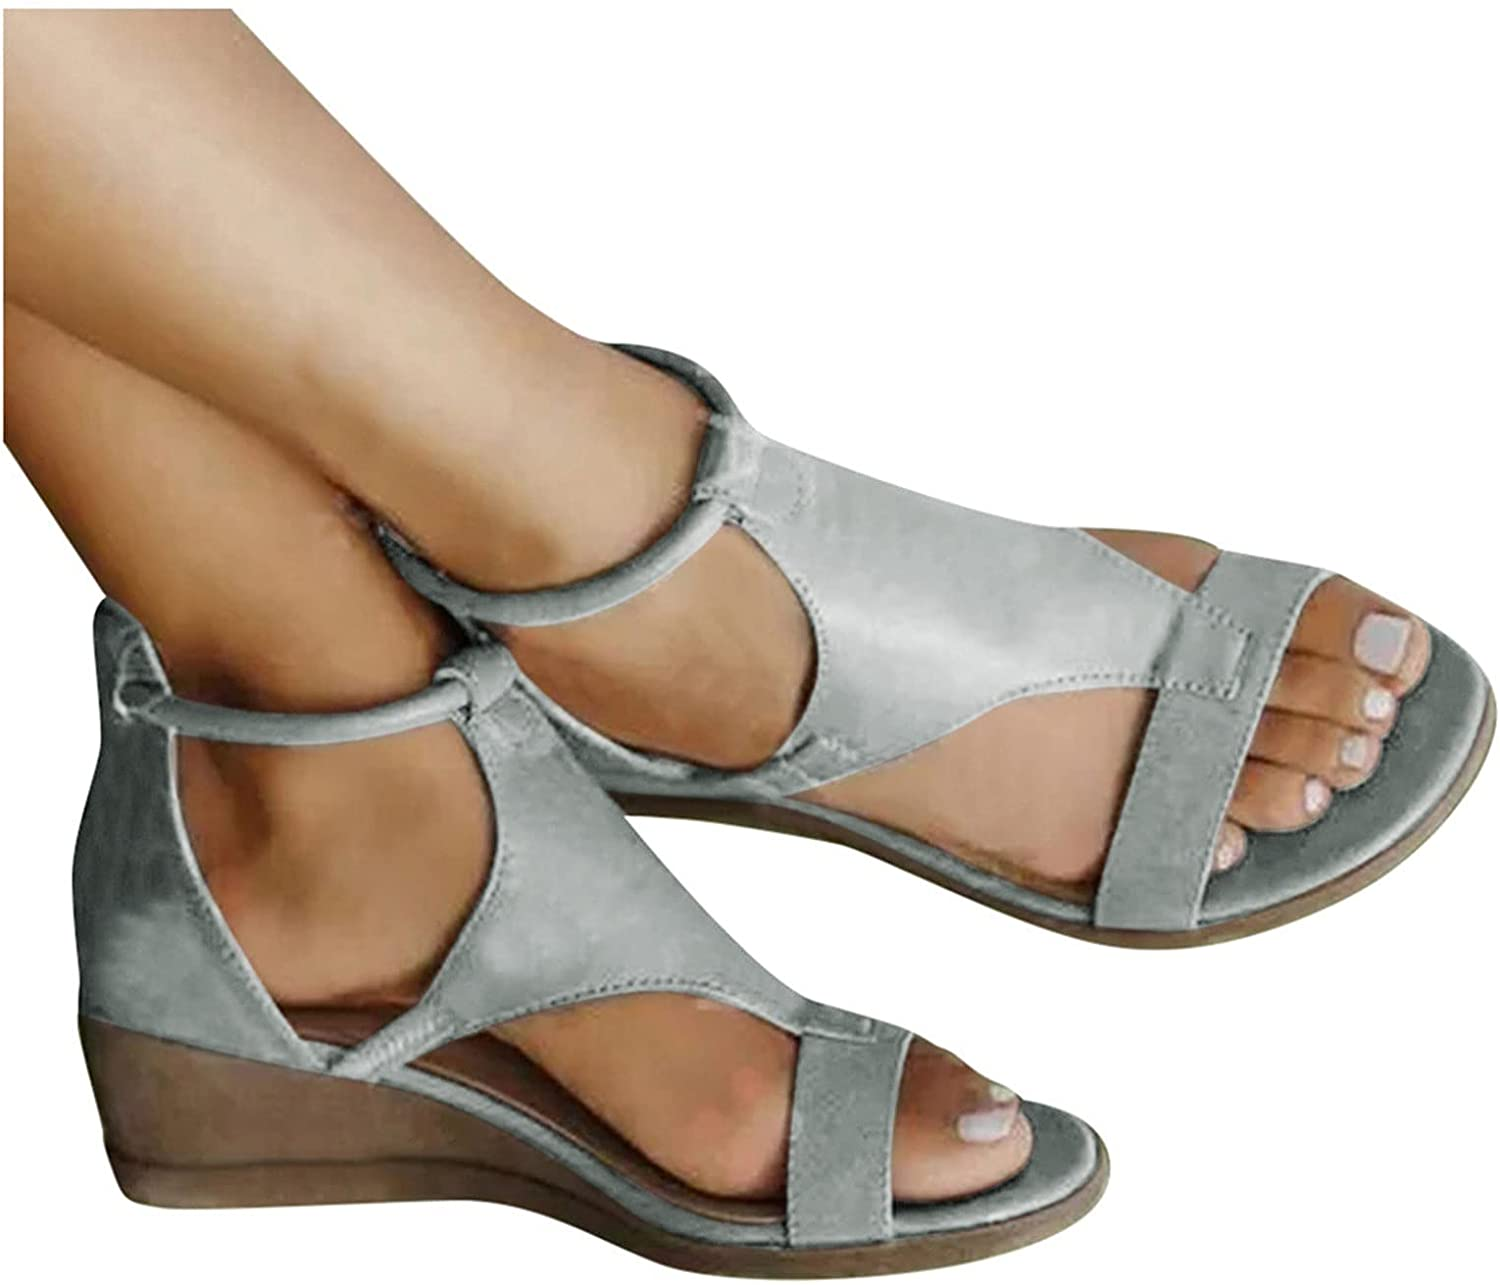 Niceast Sandals for Casual Summer,Womens Open Toe Platforms & Wedges Zipper Wide Width Ankle Strap Sandals